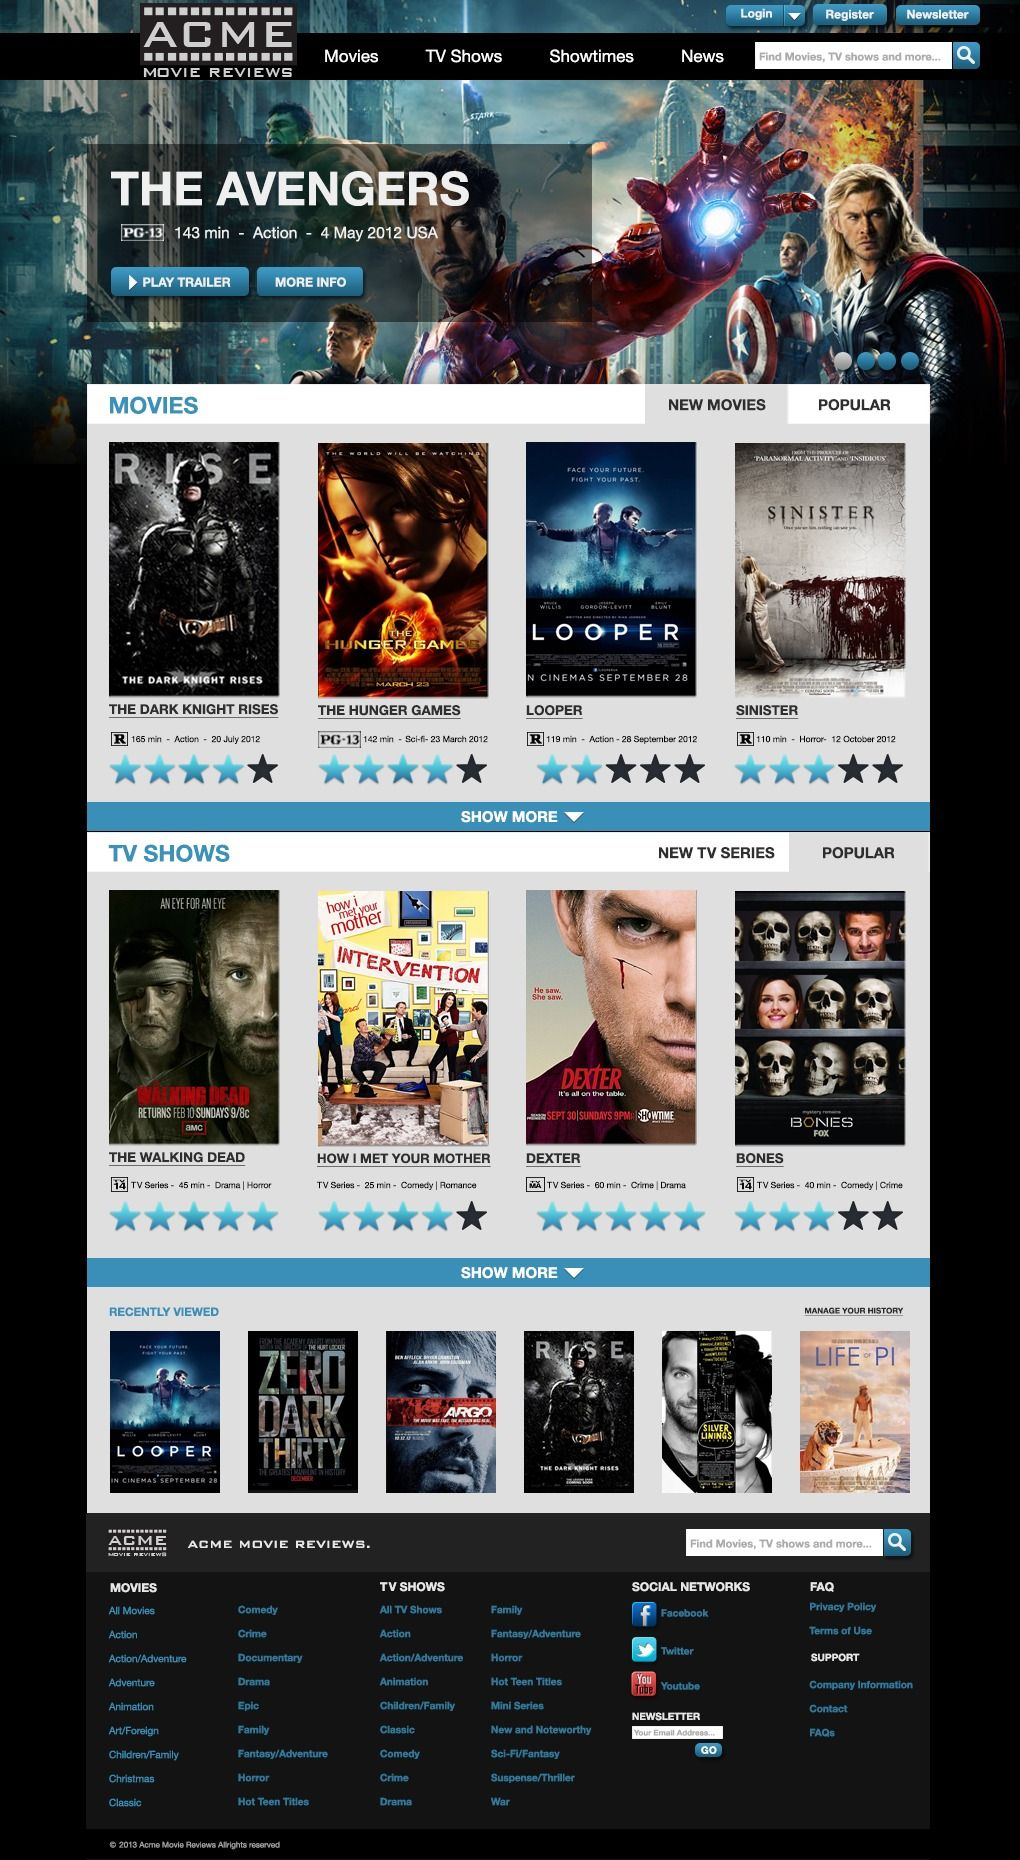 Movie review websites